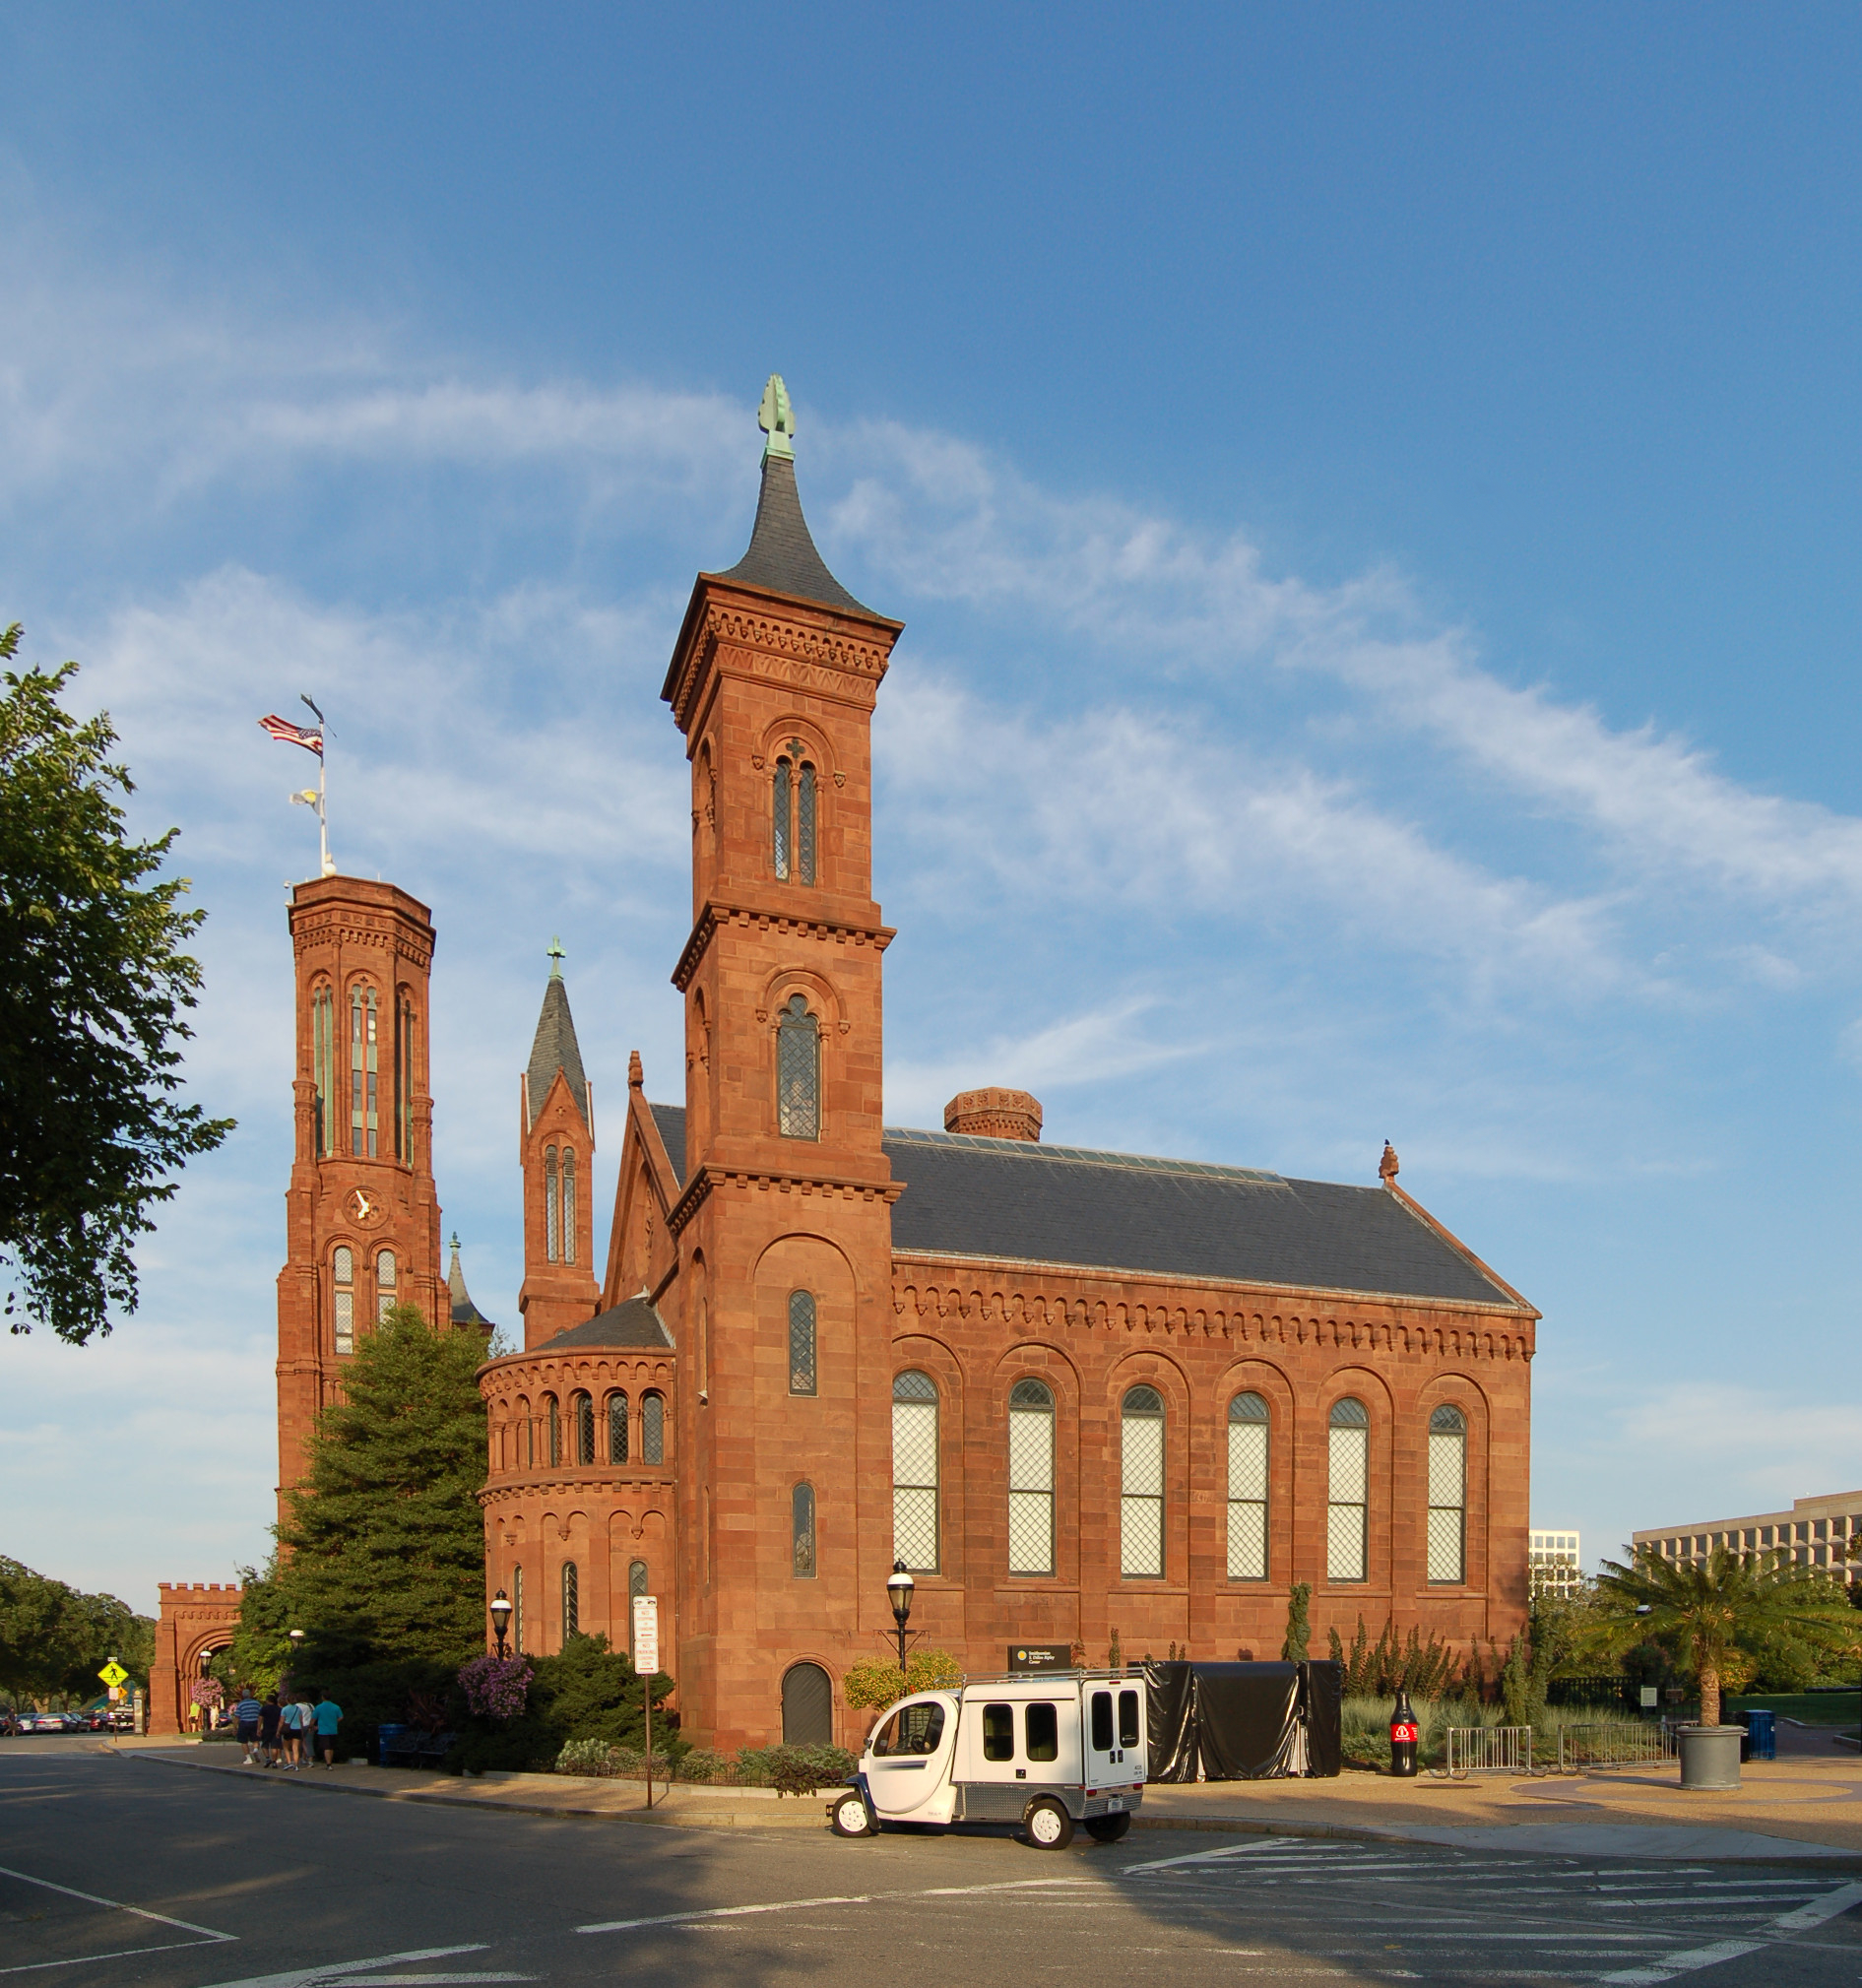 12072012 Smithsonian Building 01